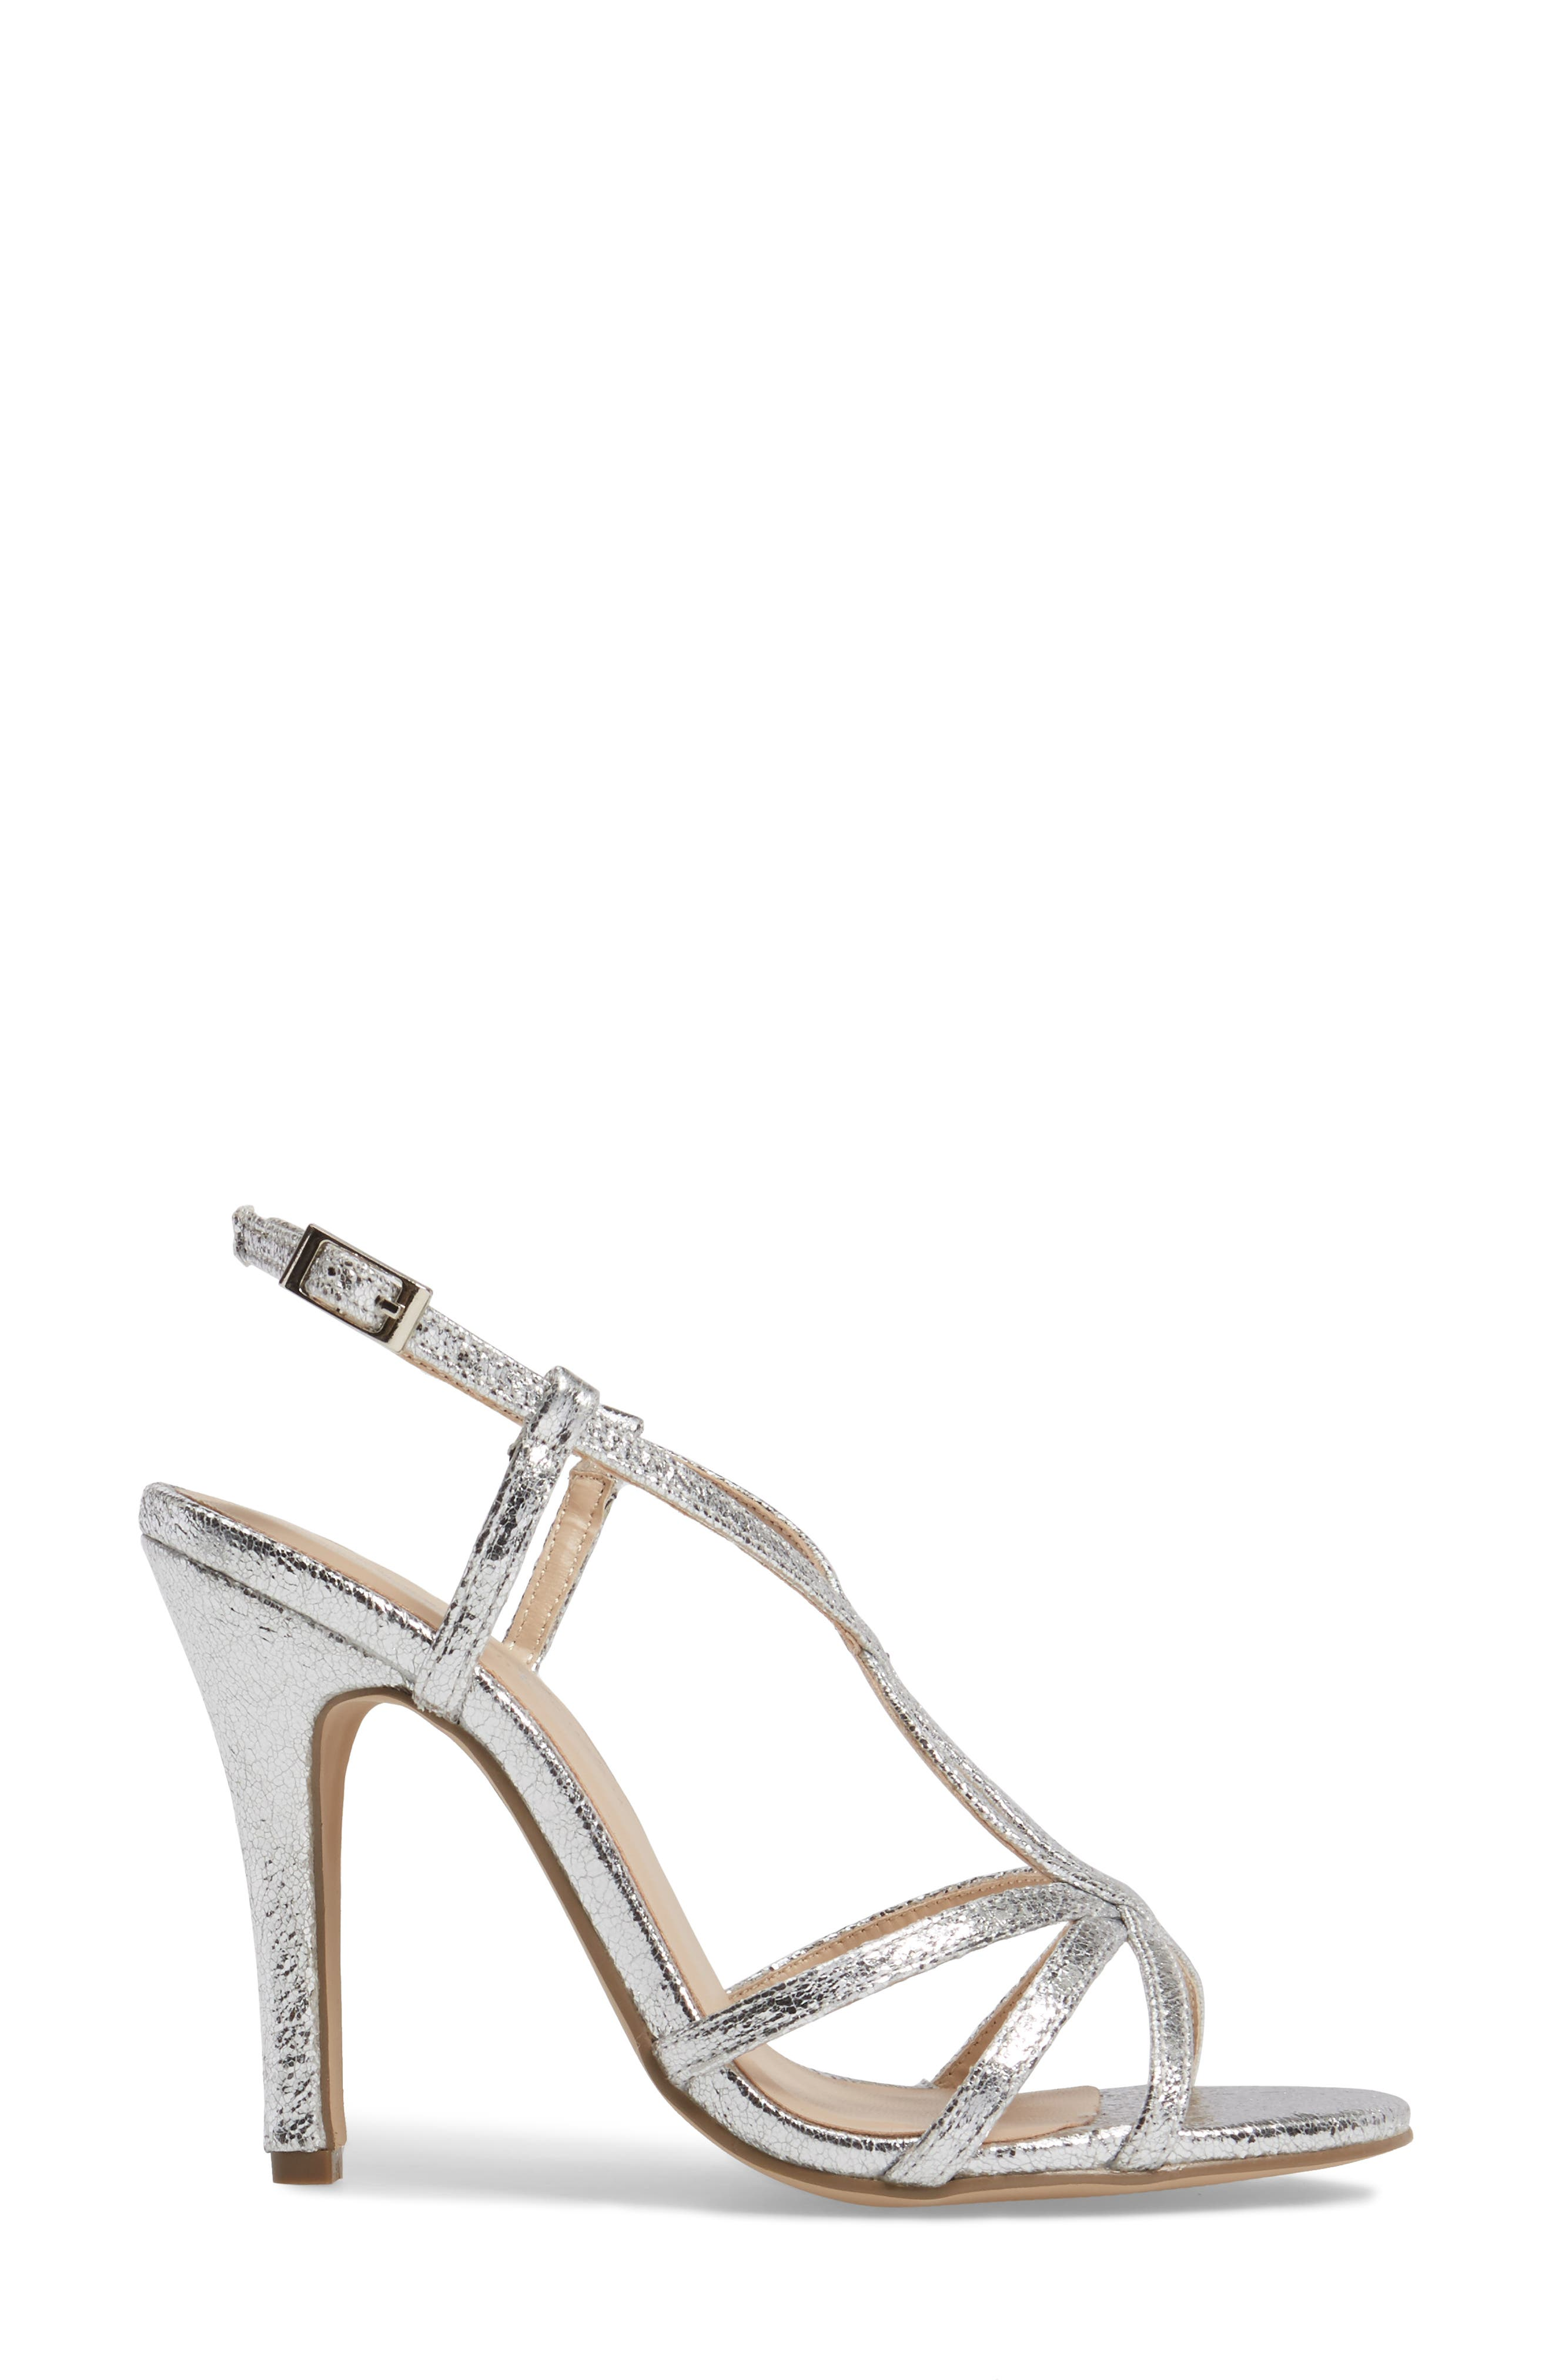 Magic Slingback Sandal,                             Alternate thumbnail 3, color,                             Silver